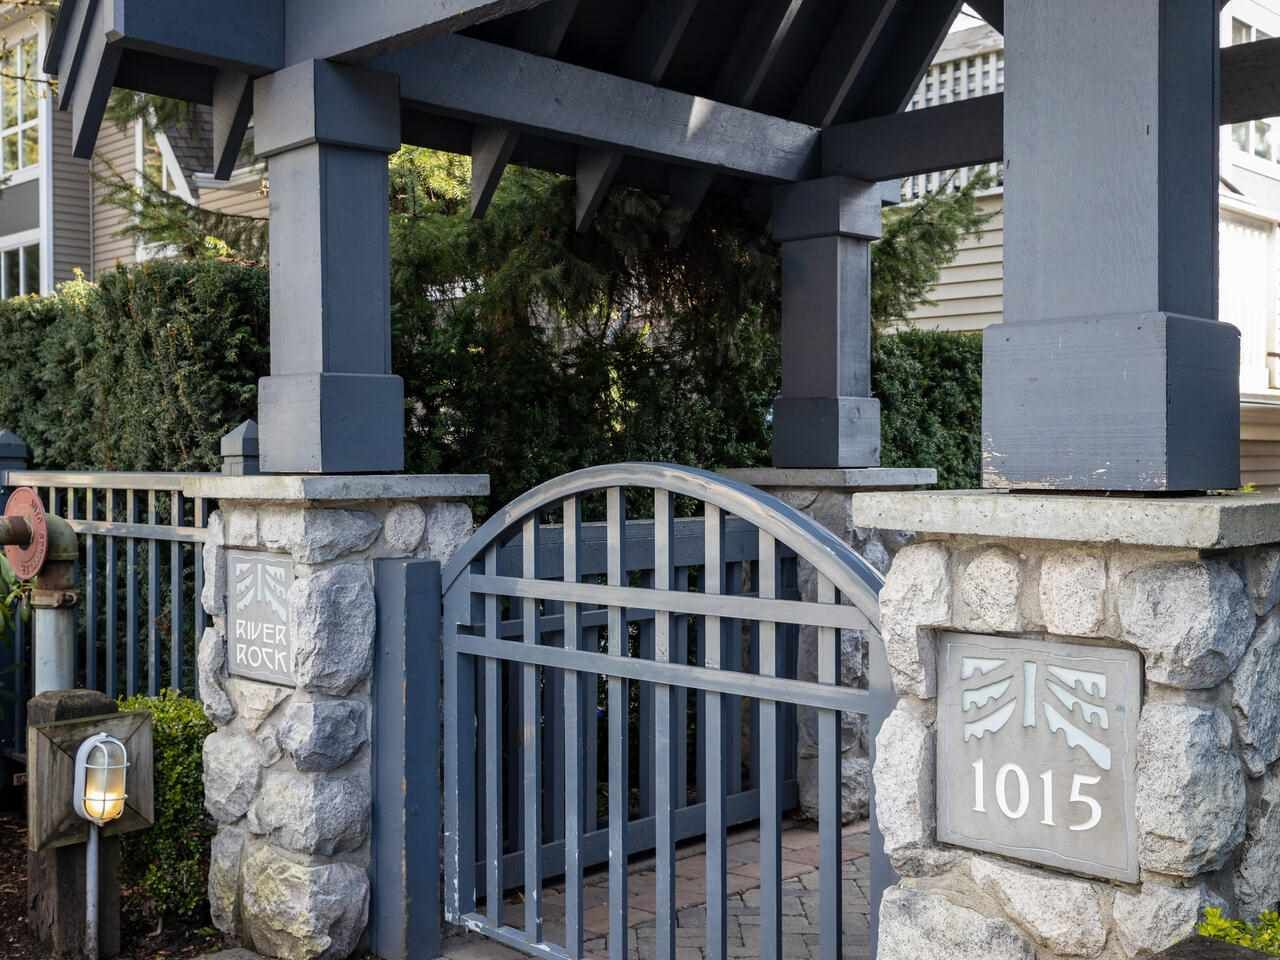 """Main Photo: 9 1015 LYNN VALLEY Road in North Vancouver: Lynn Valley Townhouse for sale in """"RIVER ROCK"""" : MLS®# R2549966"""